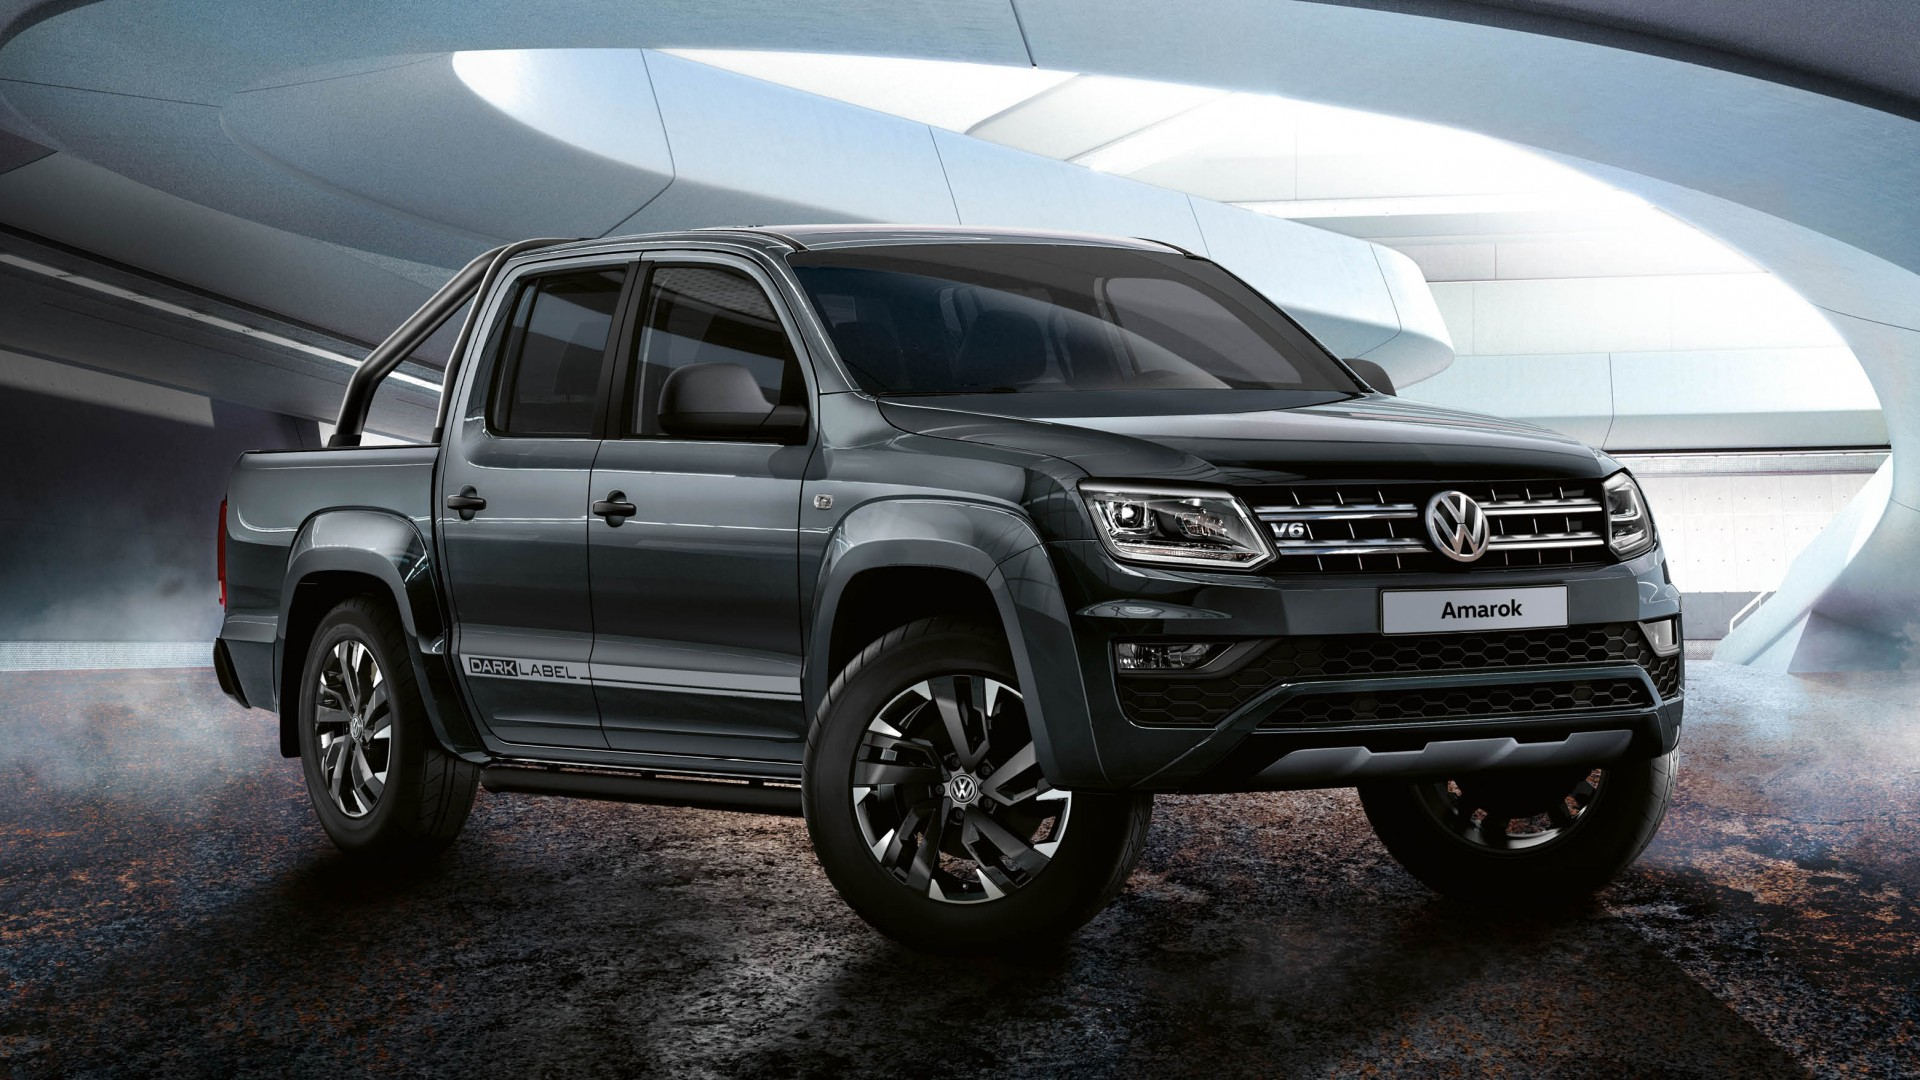 amarok-dark-label-01.jpg